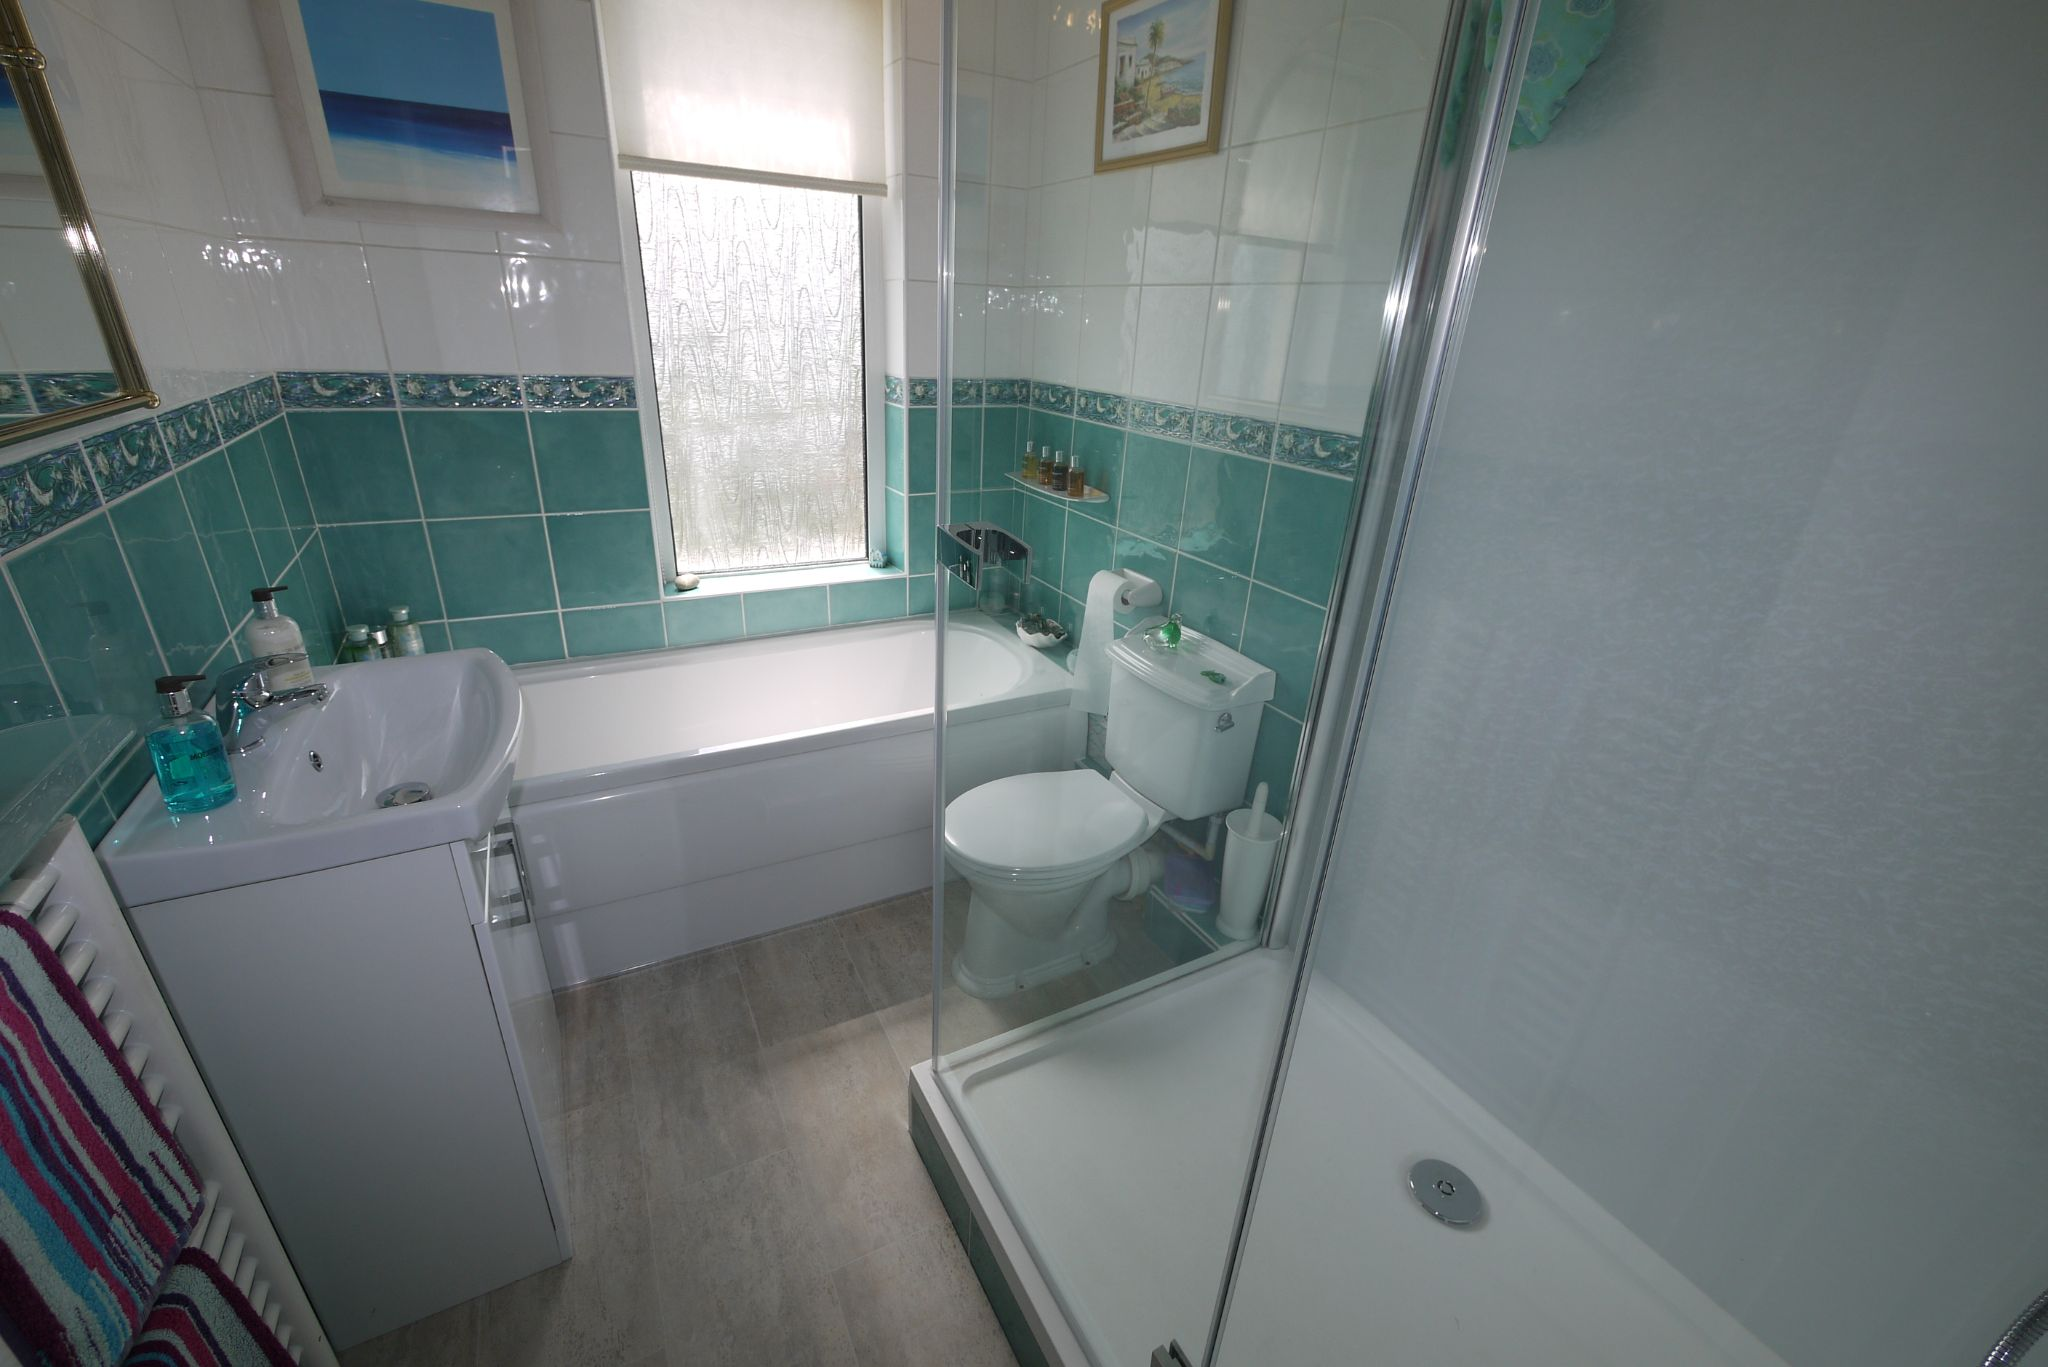 4 bedroom semi-detached house SSTC in Brighouse - Photograph 13.